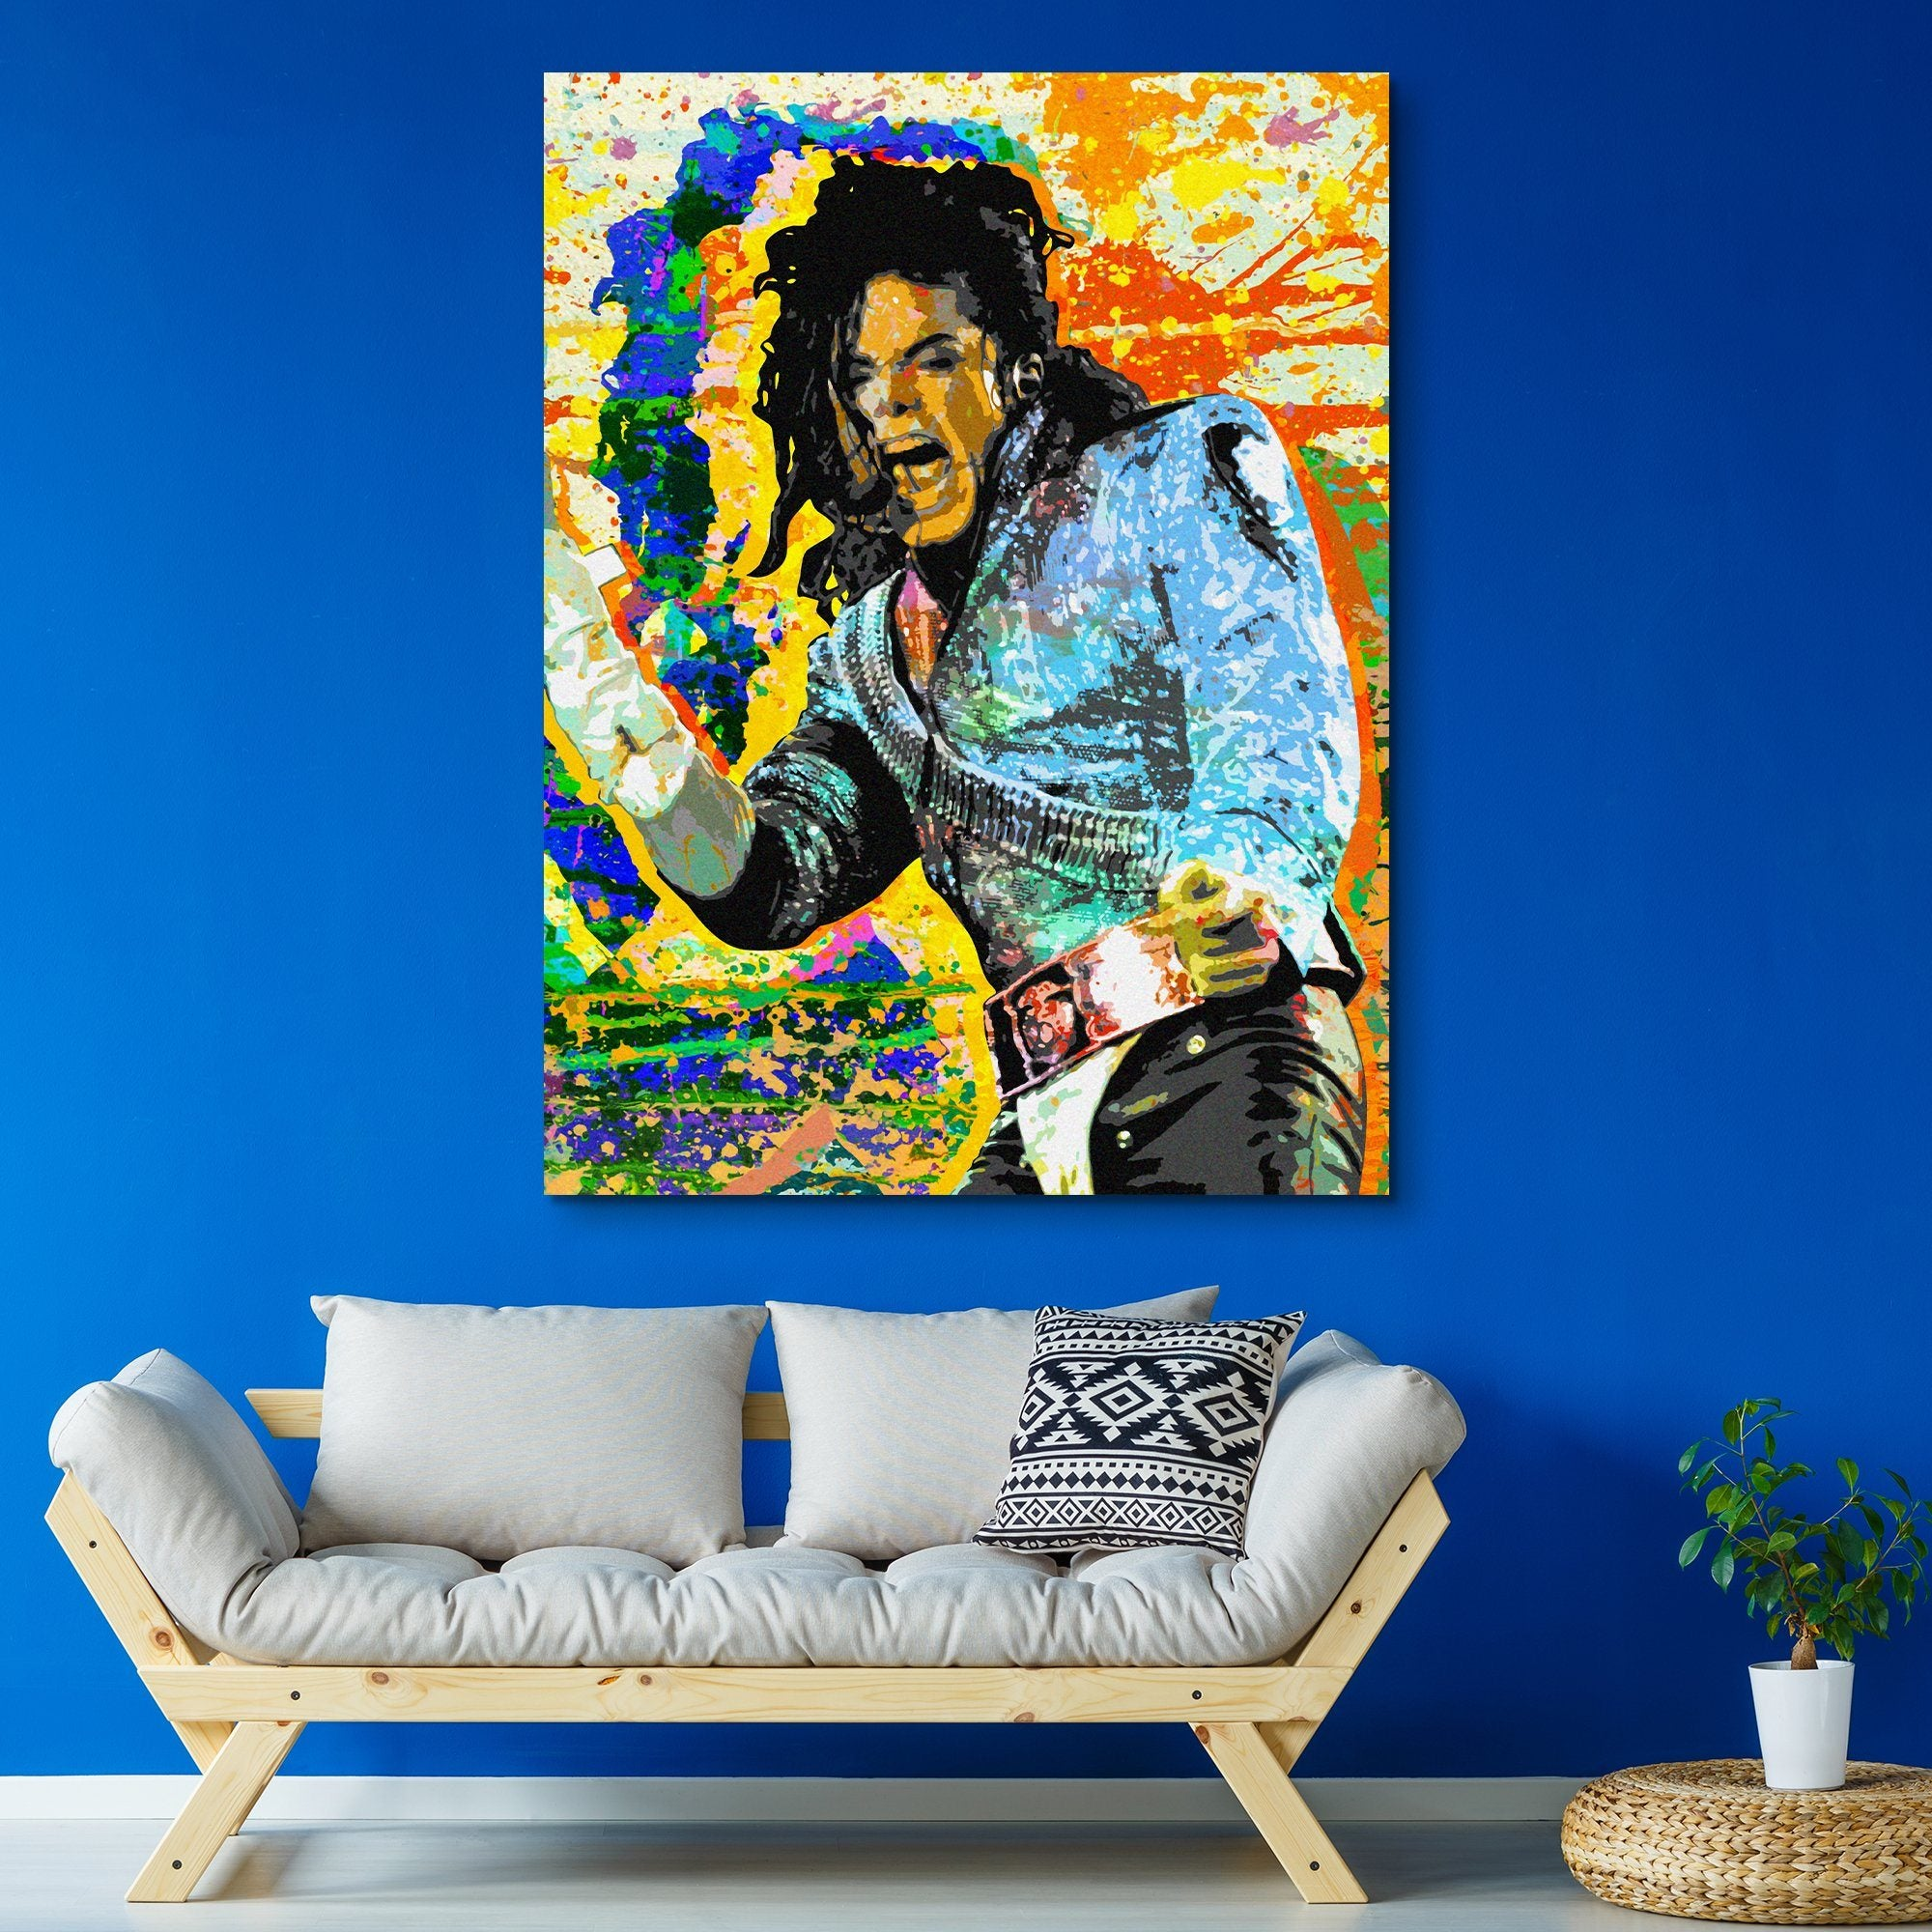 King of Pop wall art